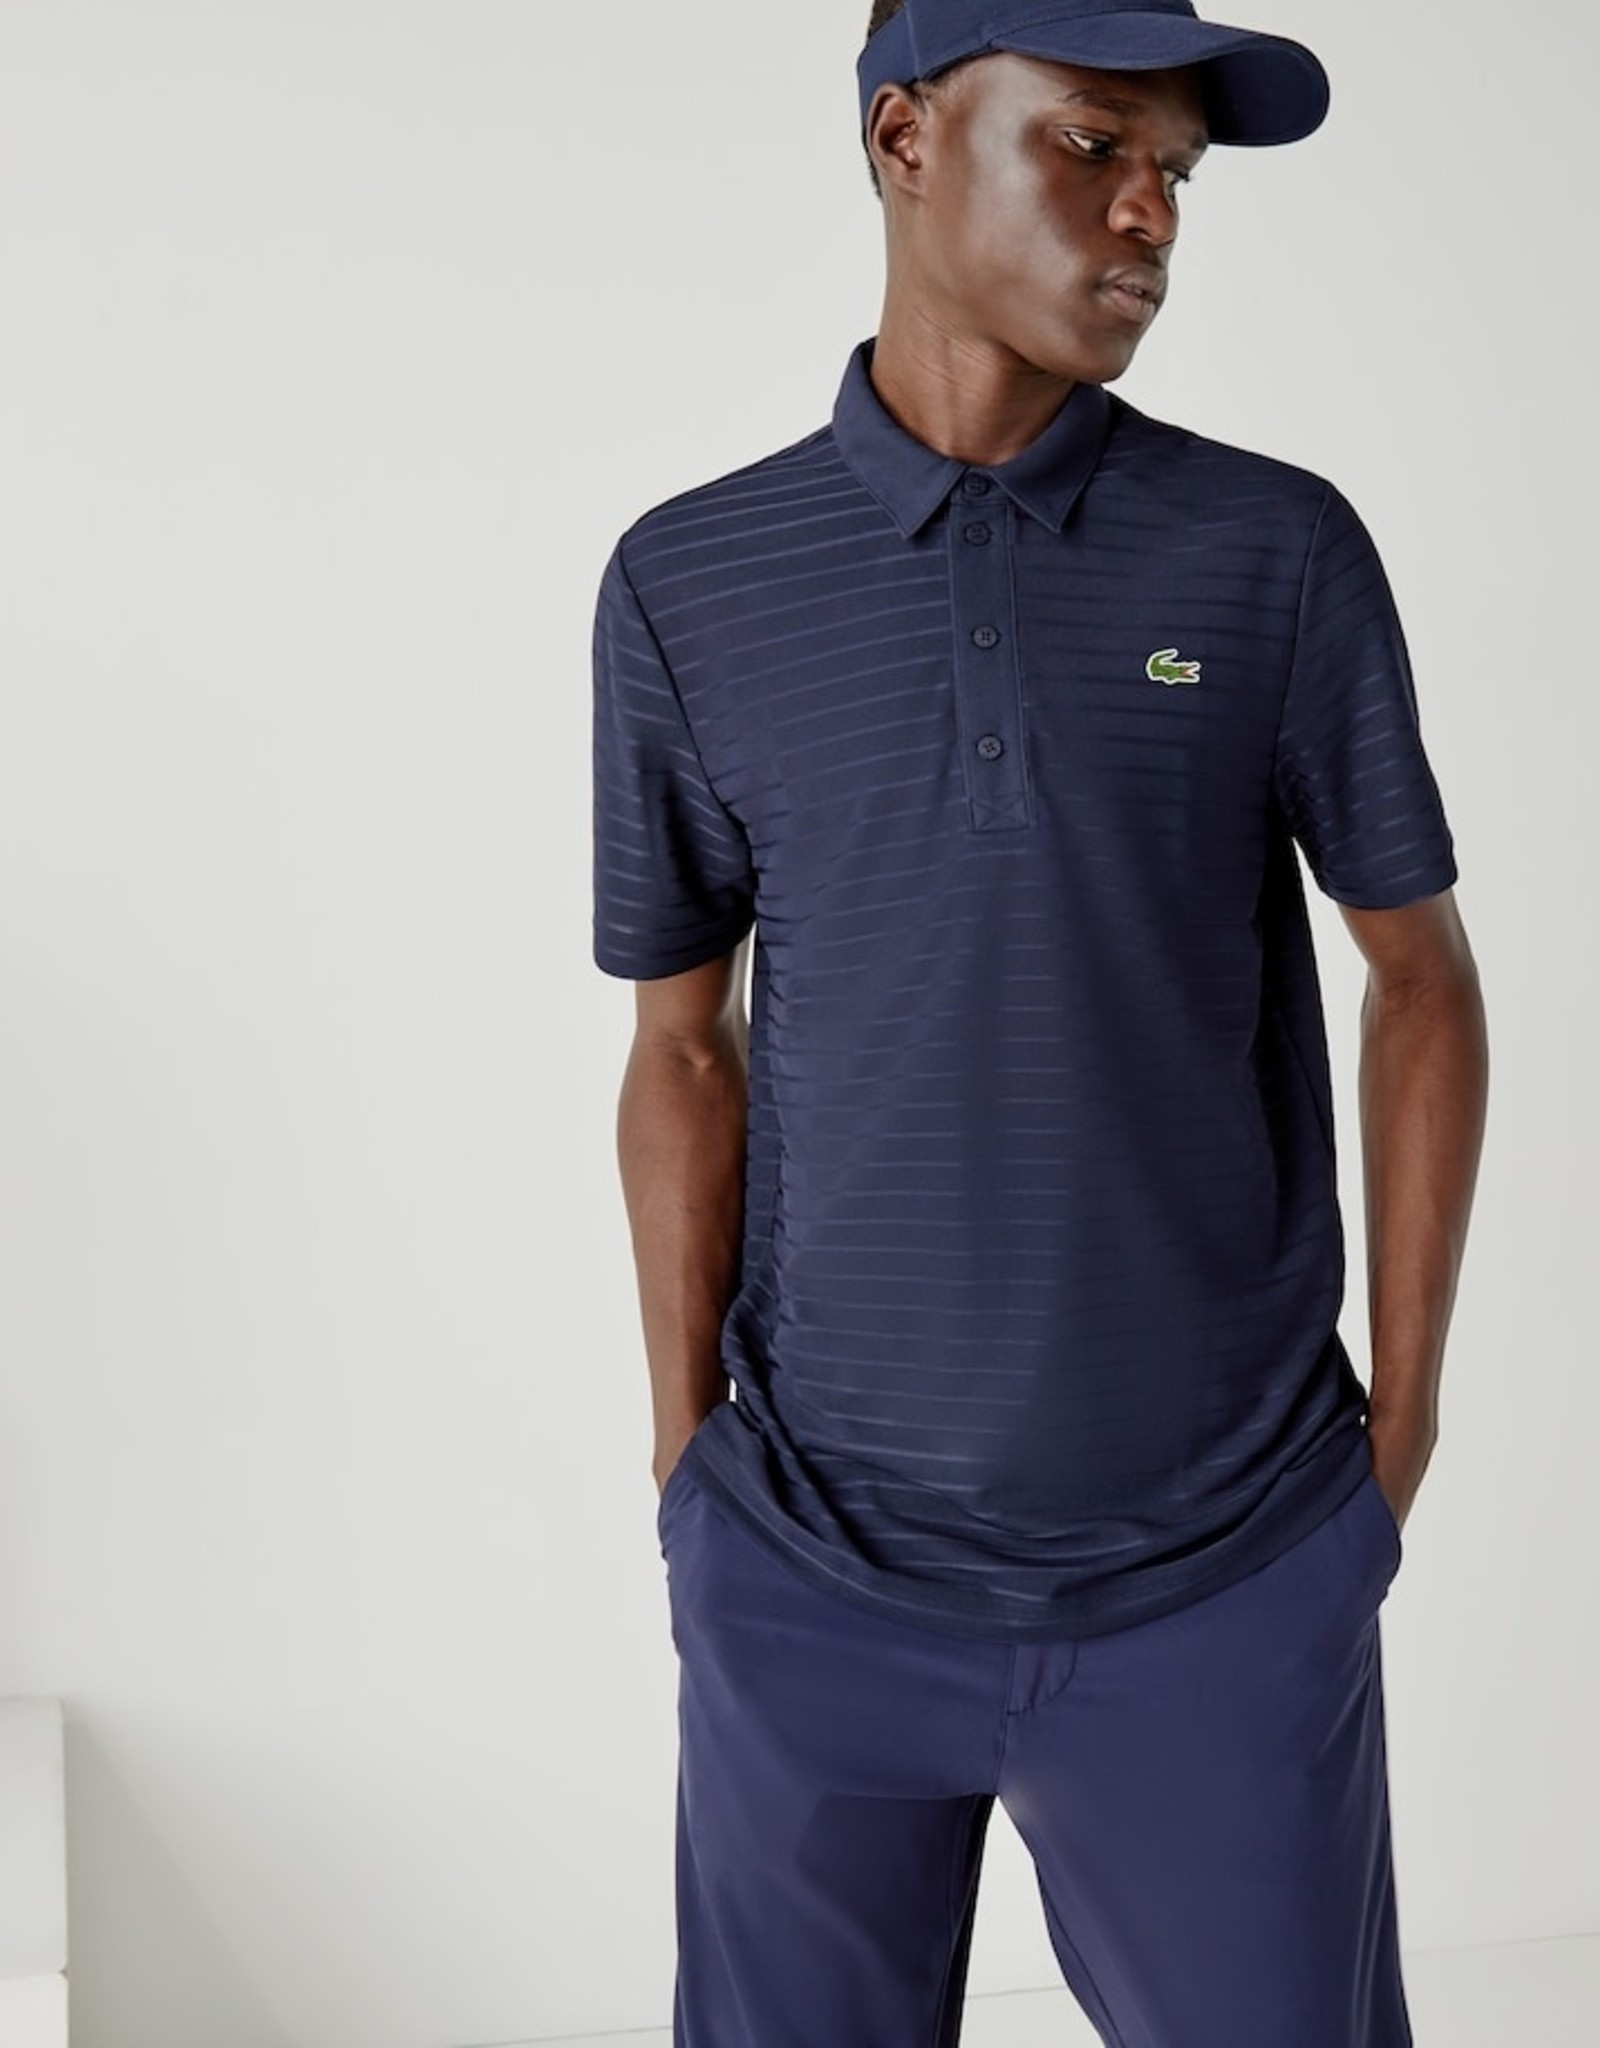 Lacoste Lacoste Golf Polo Shirt